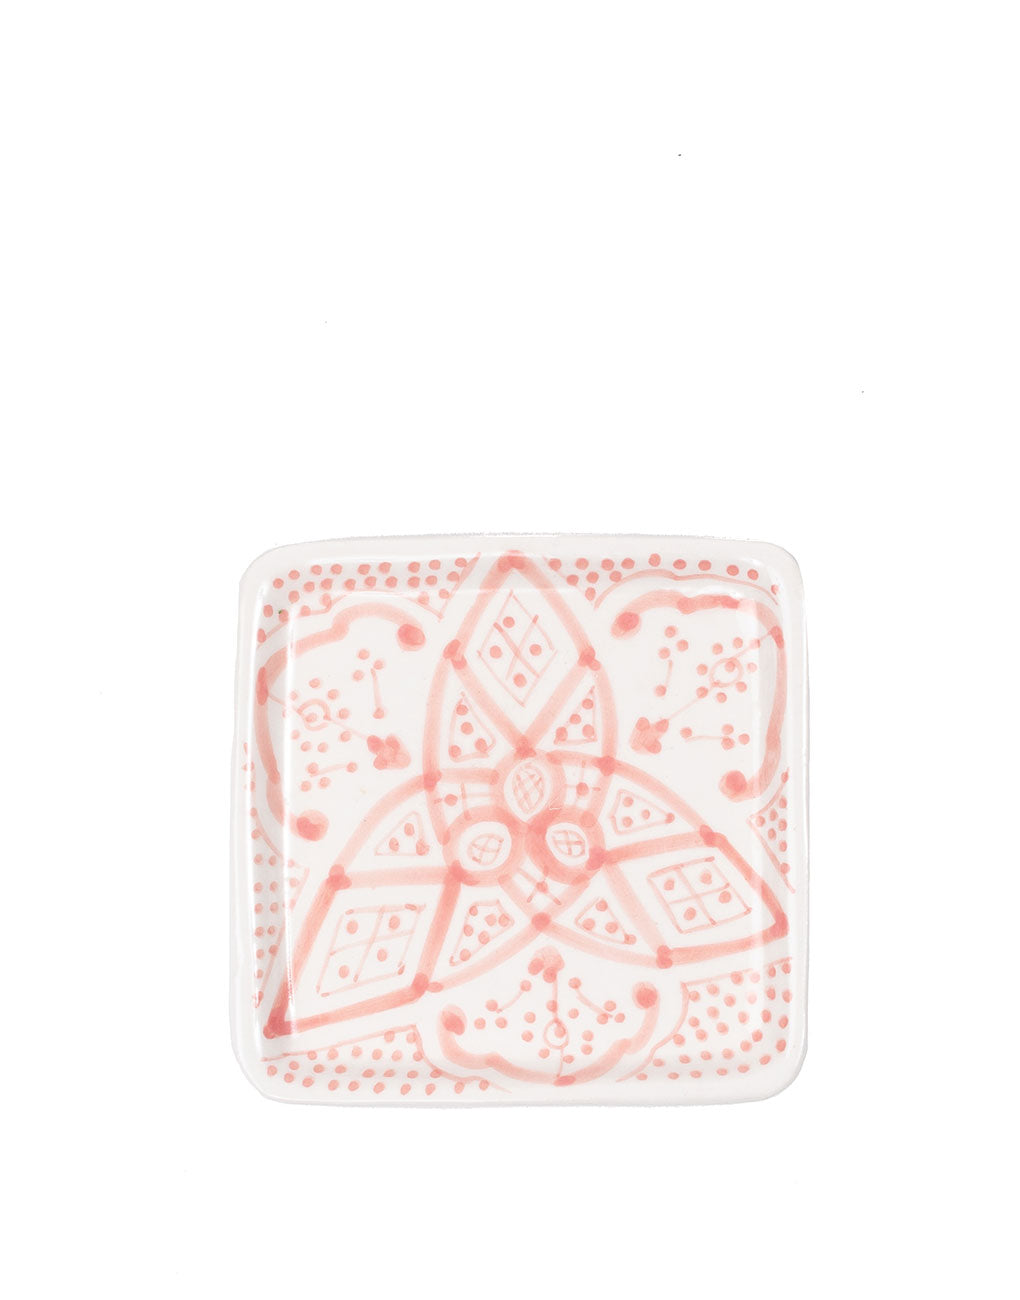 Square Ceramic Tray - Blush